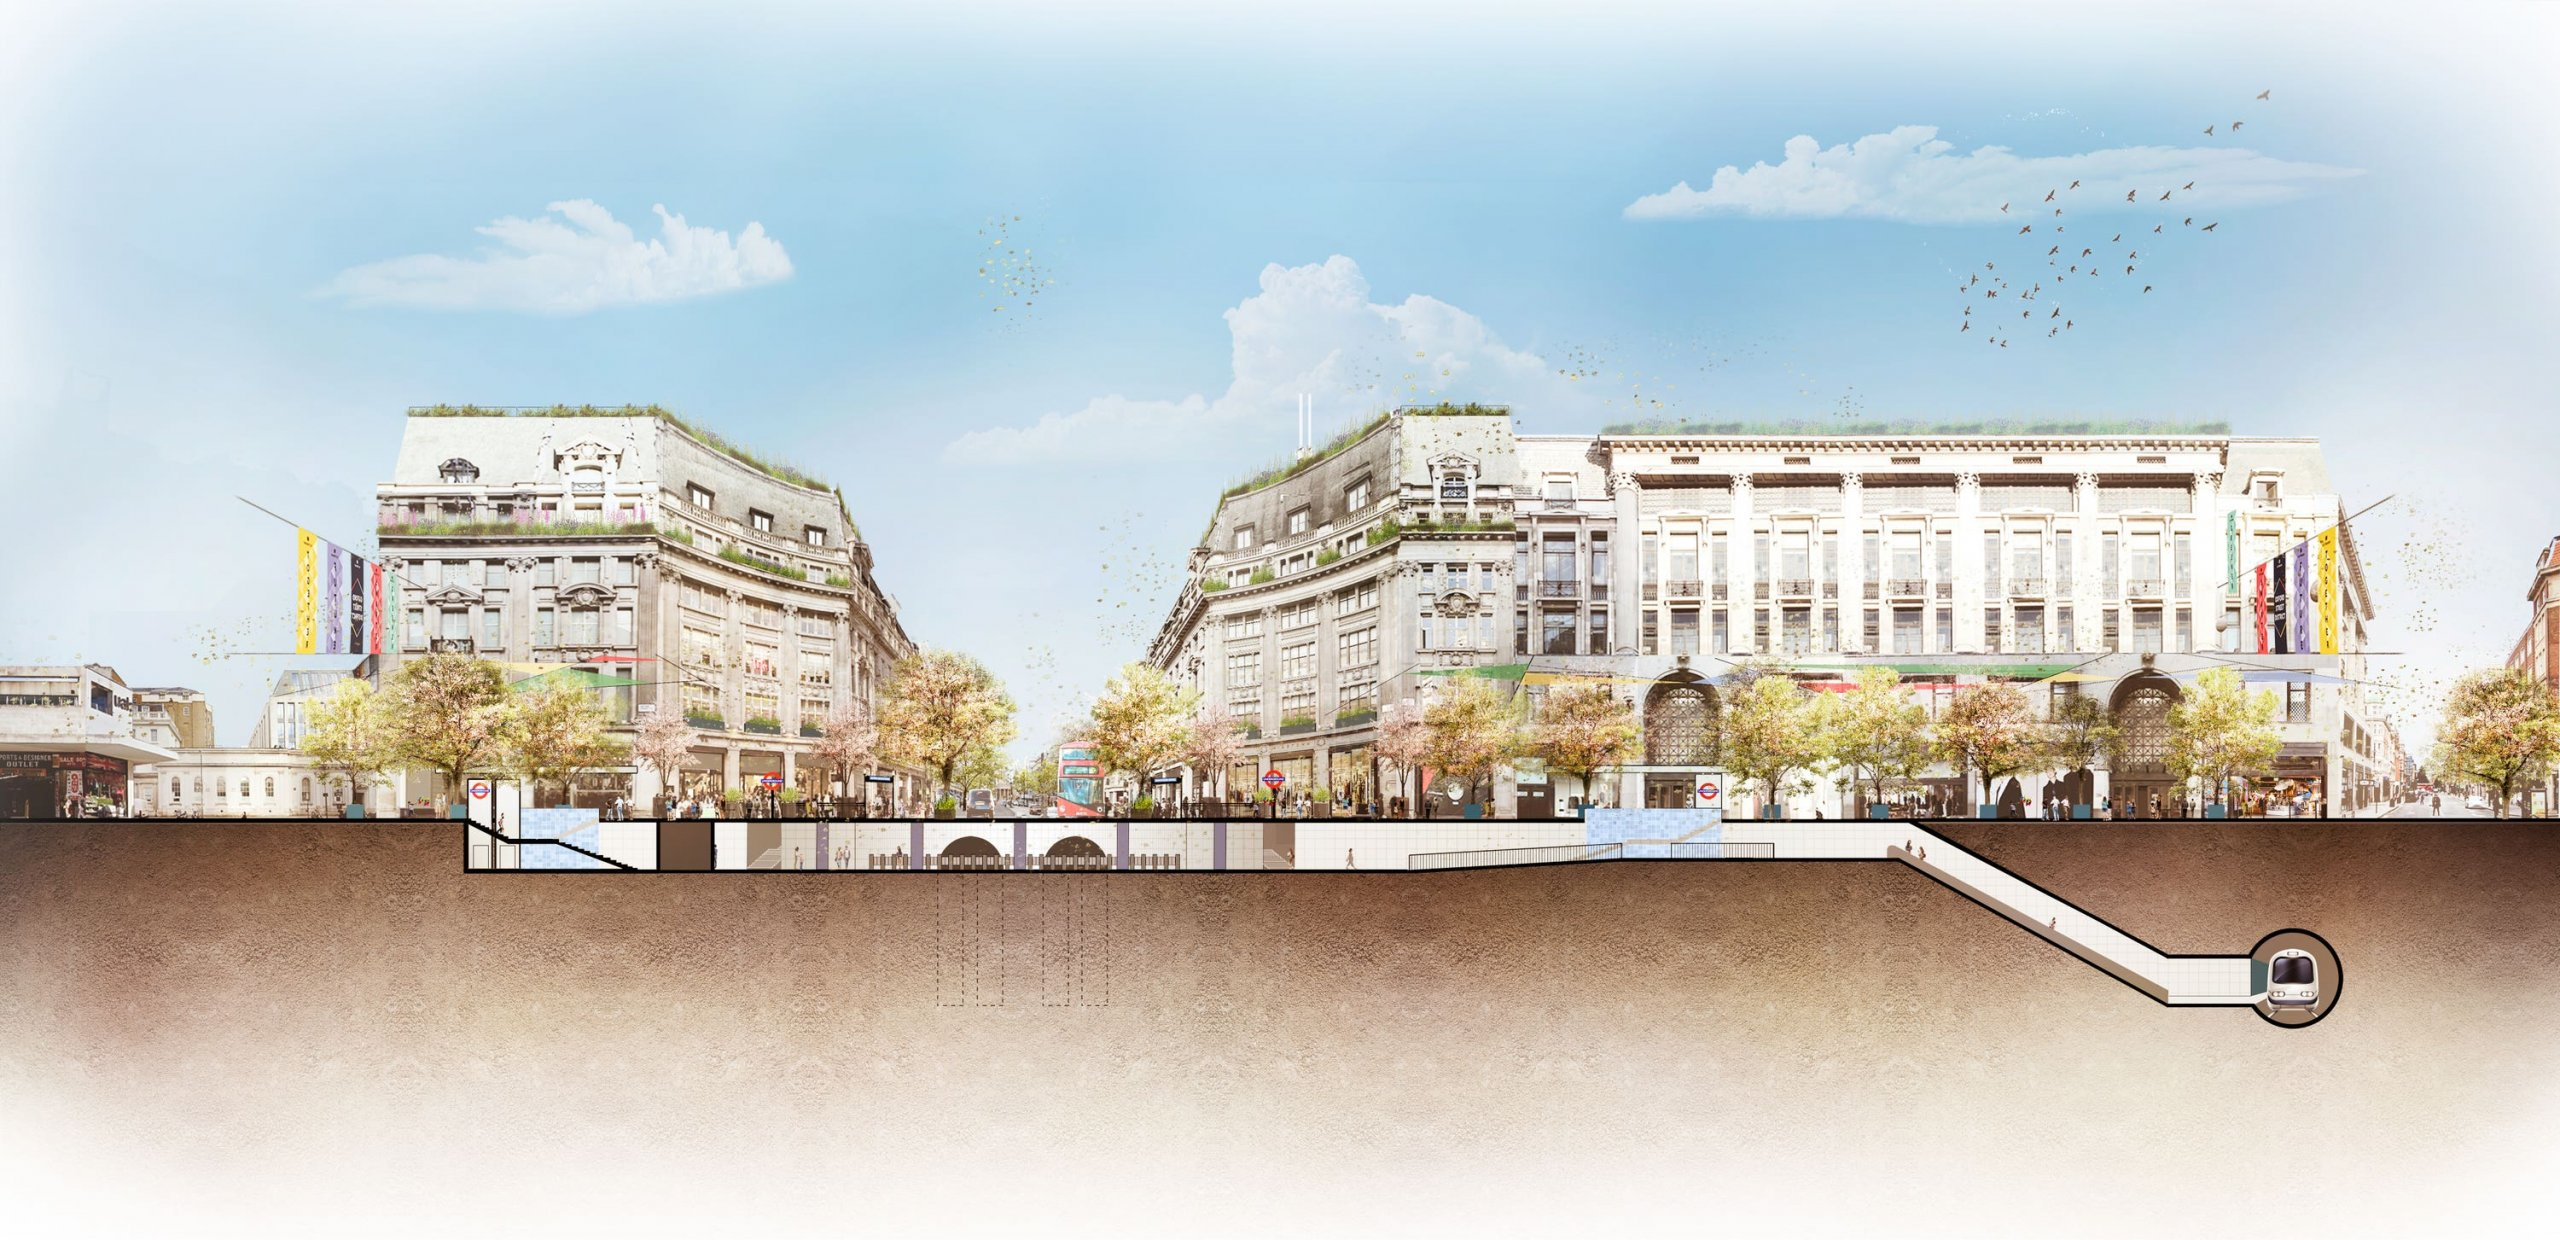 Oxford Circus finally to be partially pedestrianized starting this summer